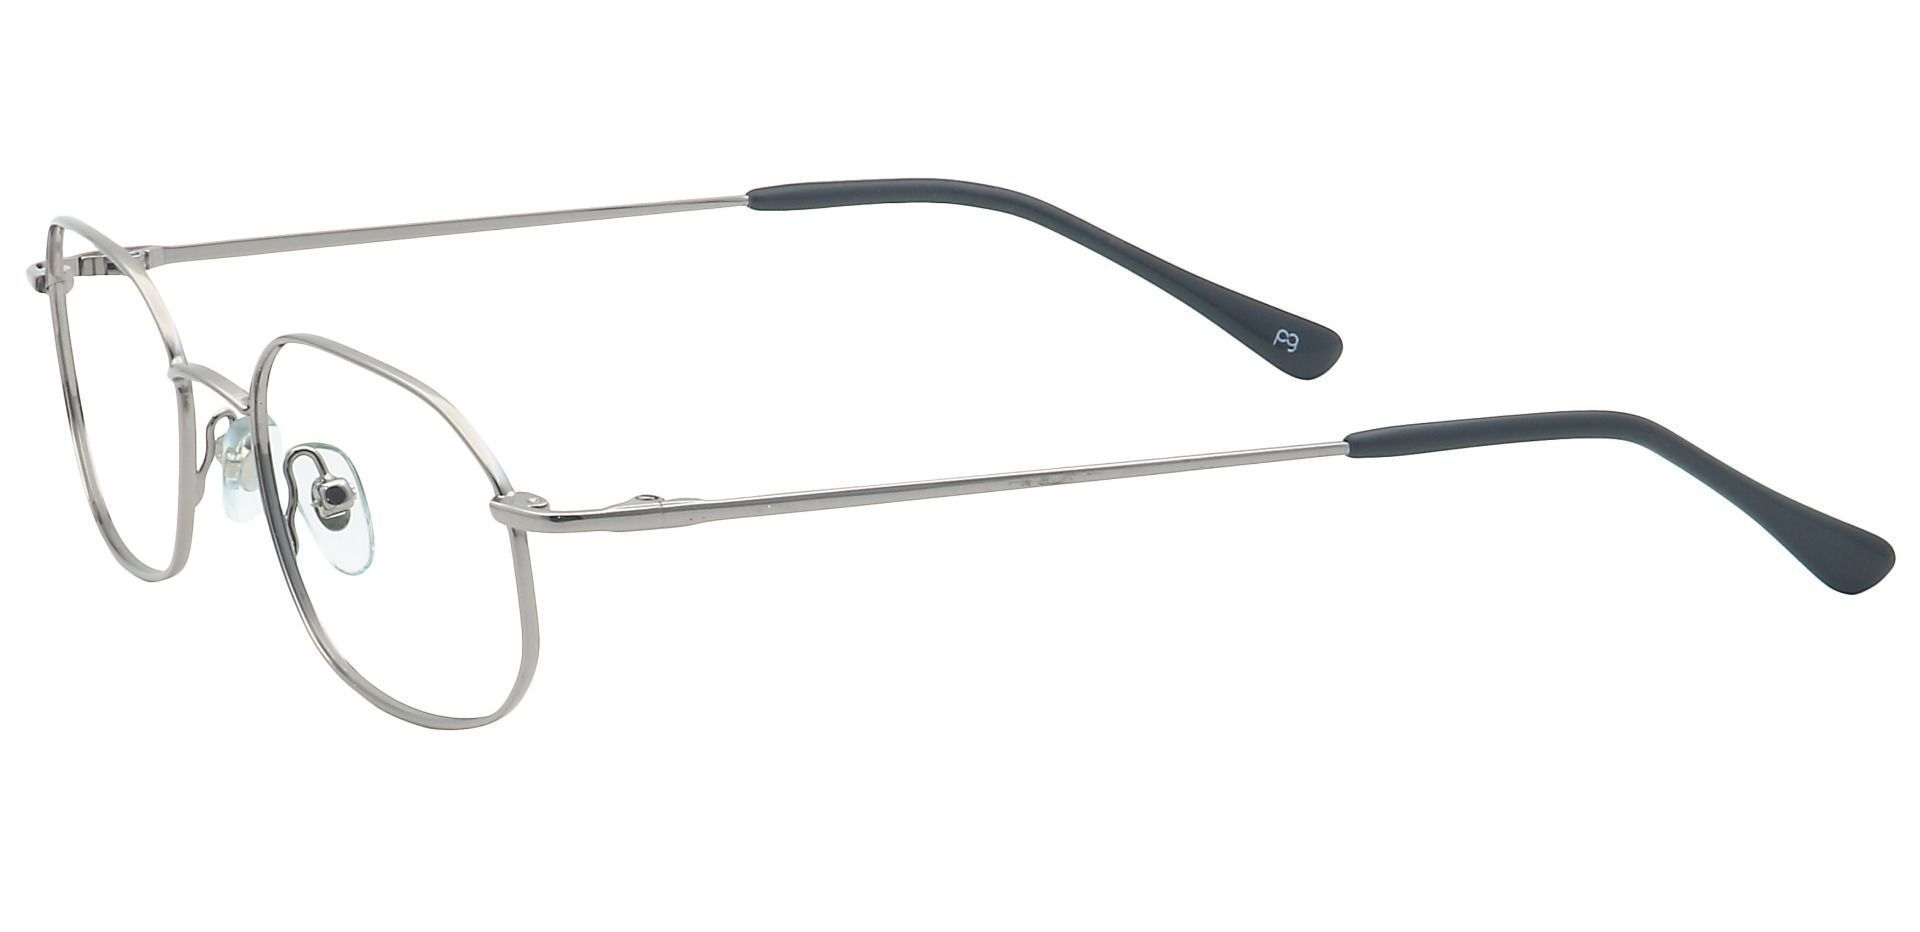 Parker Oval Lined Bifocal Glasses - Gray